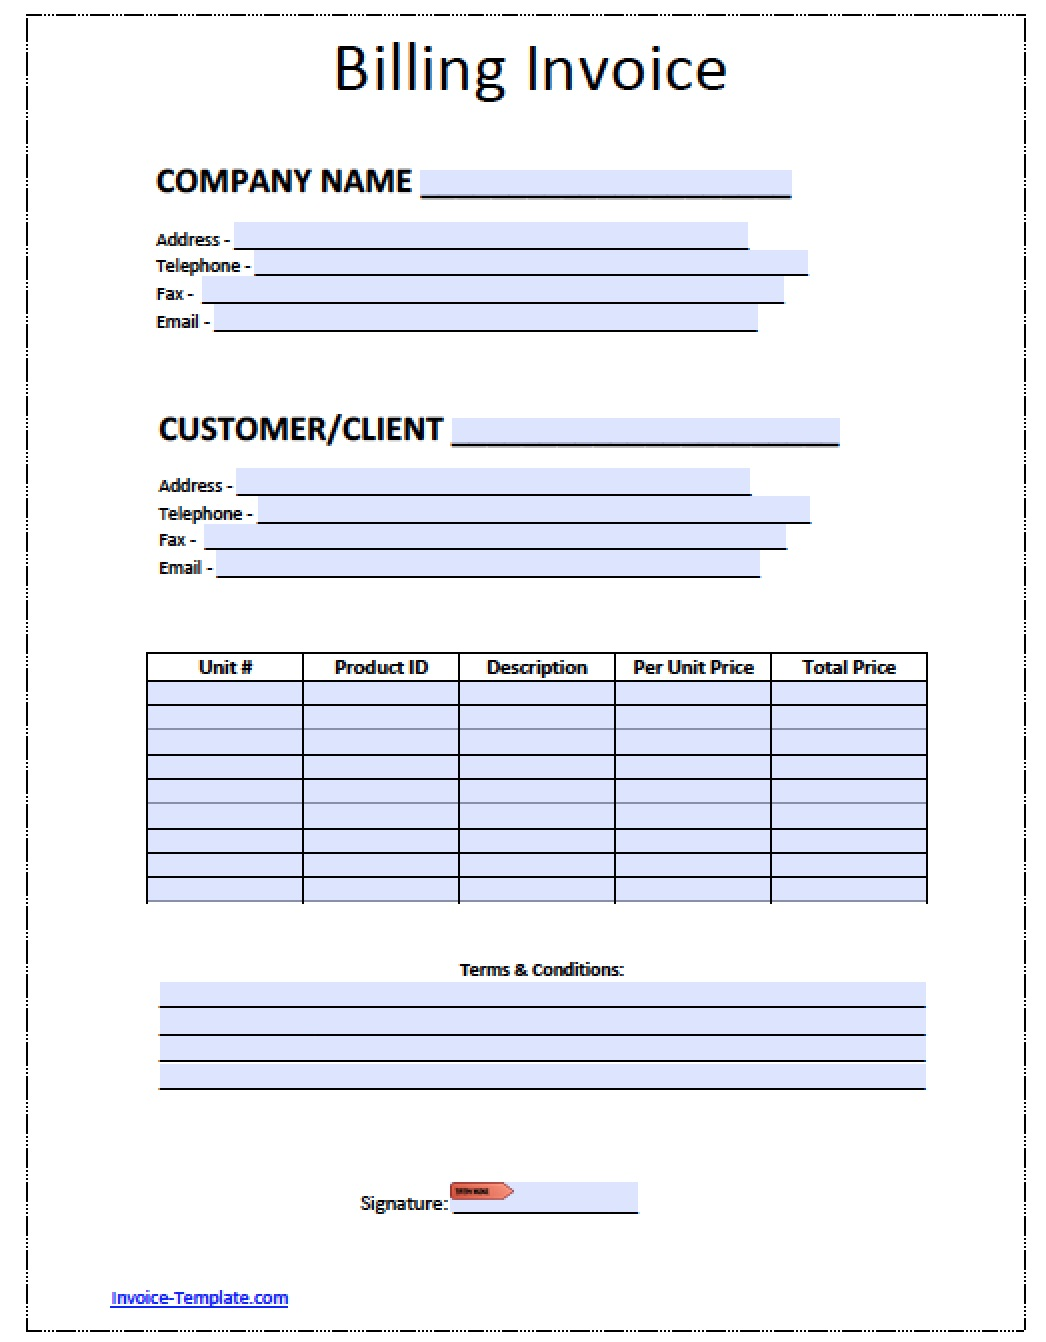 Hius  Outstanding Billing Invoice Invoices Faq U Cloudflare Support Billing  With Handsome Free Billing Invoice Template  Excel  Pdf  Word Doc  Billing With Delectable Fedex Invoice Also Invoice Template Download In Addition Invoice Design And Invoice Simple As Well As Send Invoice Paypal Additionally Examples Of Invoices From Happytomco With Hius  Handsome Billing Invoice Invoices Faq U Cloudflare Support Billing  With Delectable Free Billing Invoice Template  Excel  Pdf  Word Doc  Billing And Outstanding Fedex Invoice Also Invoice Template Download In Addition Invoice Design From Happytomco